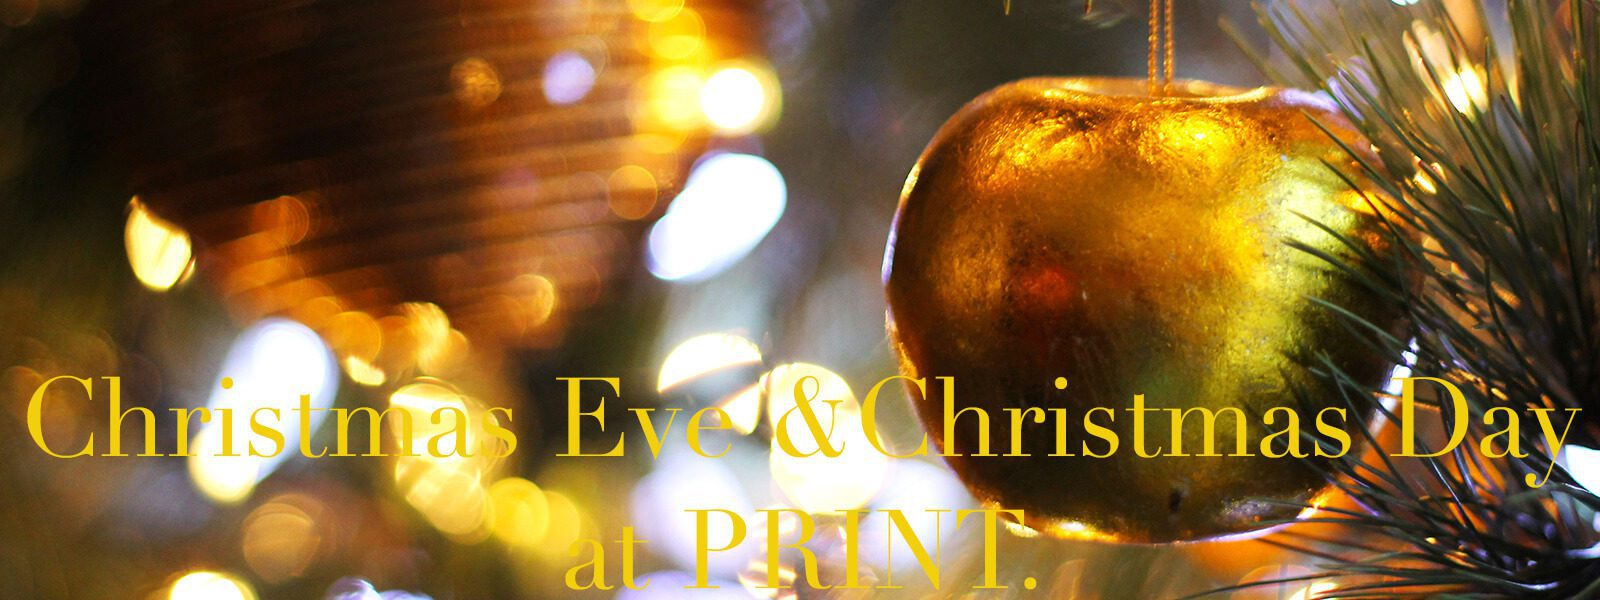 """Golden ornaments in a Christmas tree with text """"Christmas Eve & Christmas Day at PRINT."""""""